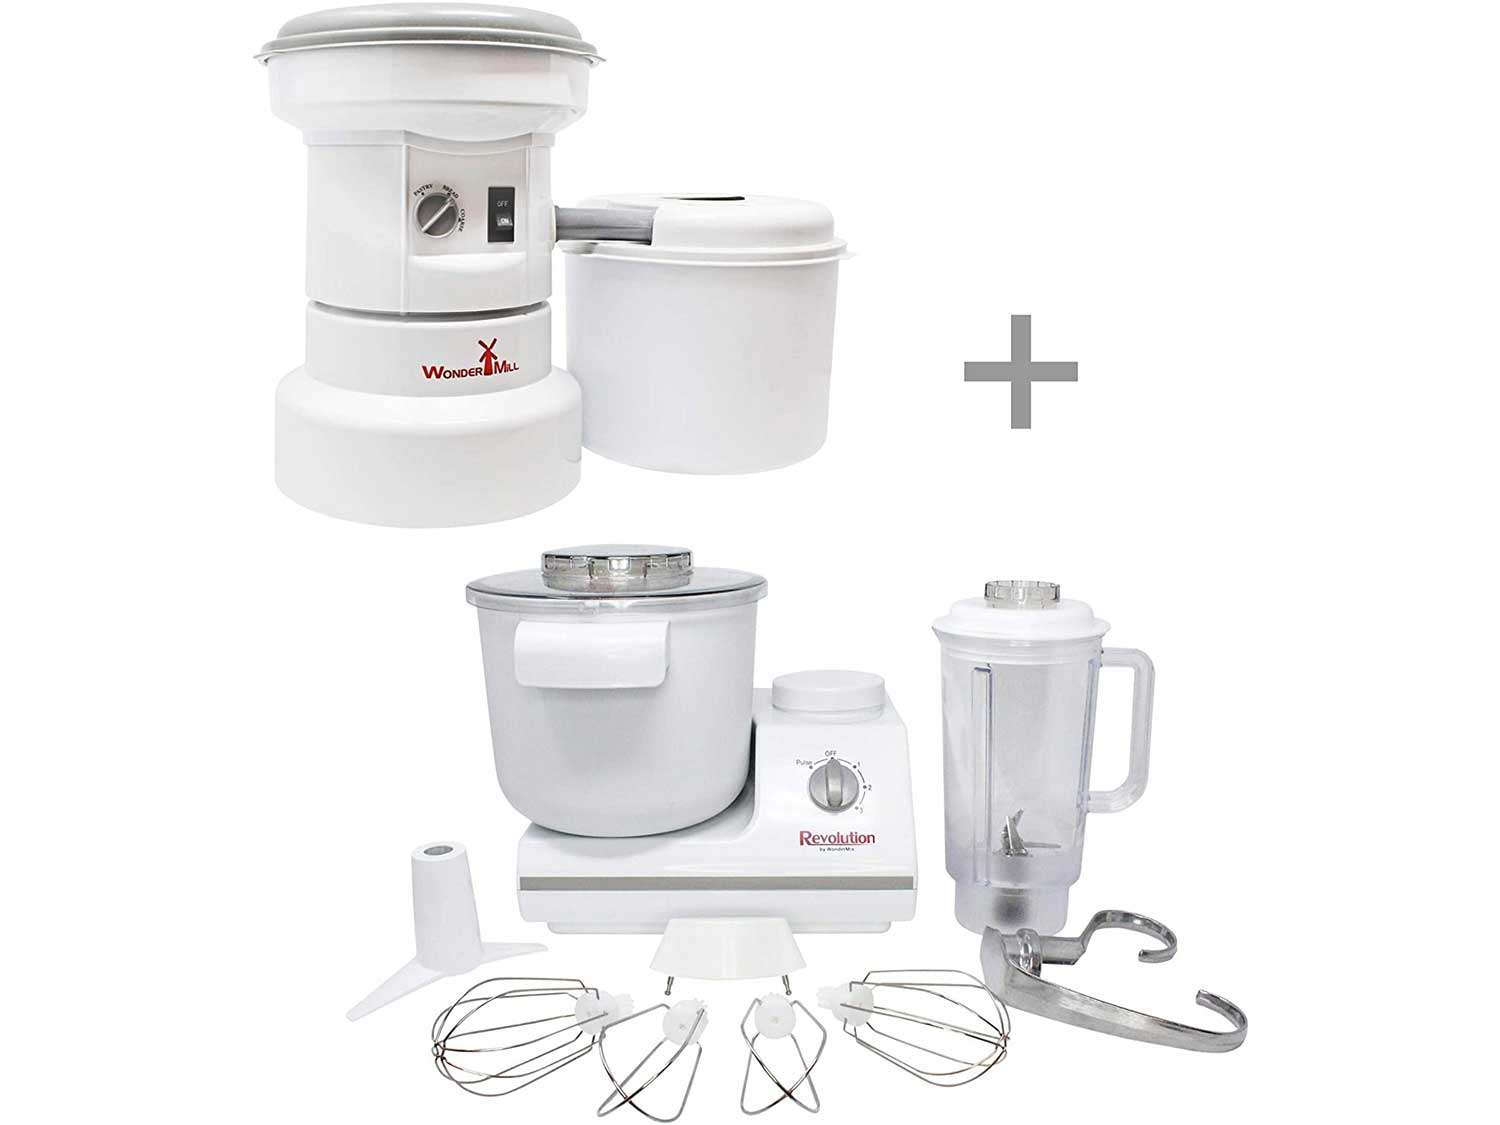 Powerful Electric Grain Mill Grinder and Dough Kitchen Mixer Bundle for Home and Professional Use - High Speed Flour Mill for Healthy Grains and Versatile Dough Blender for Making Bread by Wondermill